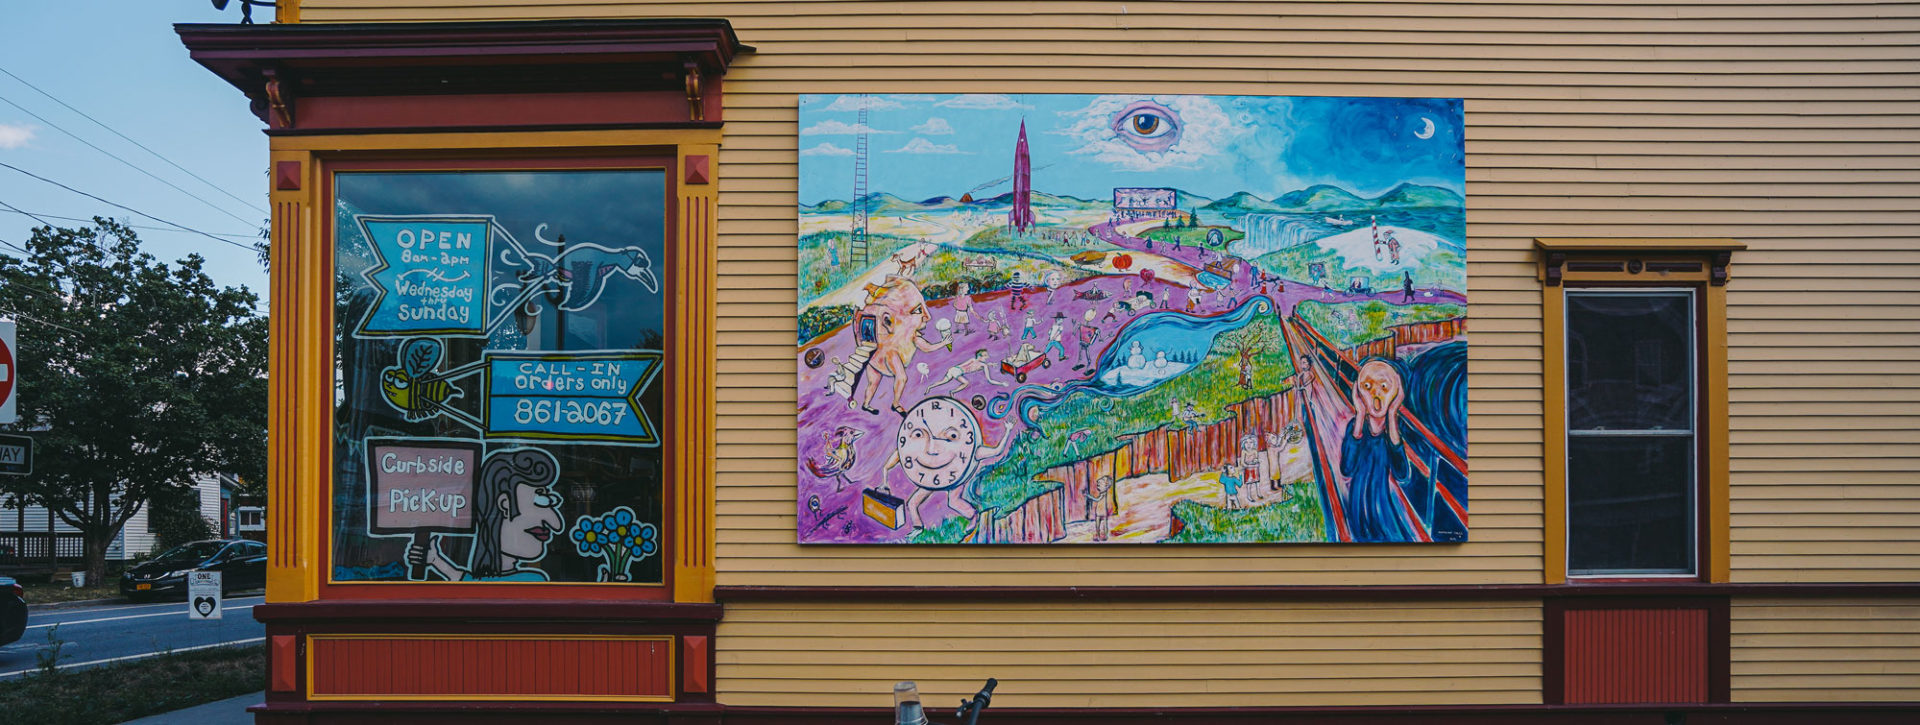 Aerial image and video courtesy of William Daugherty - storefront with brightly colored painting